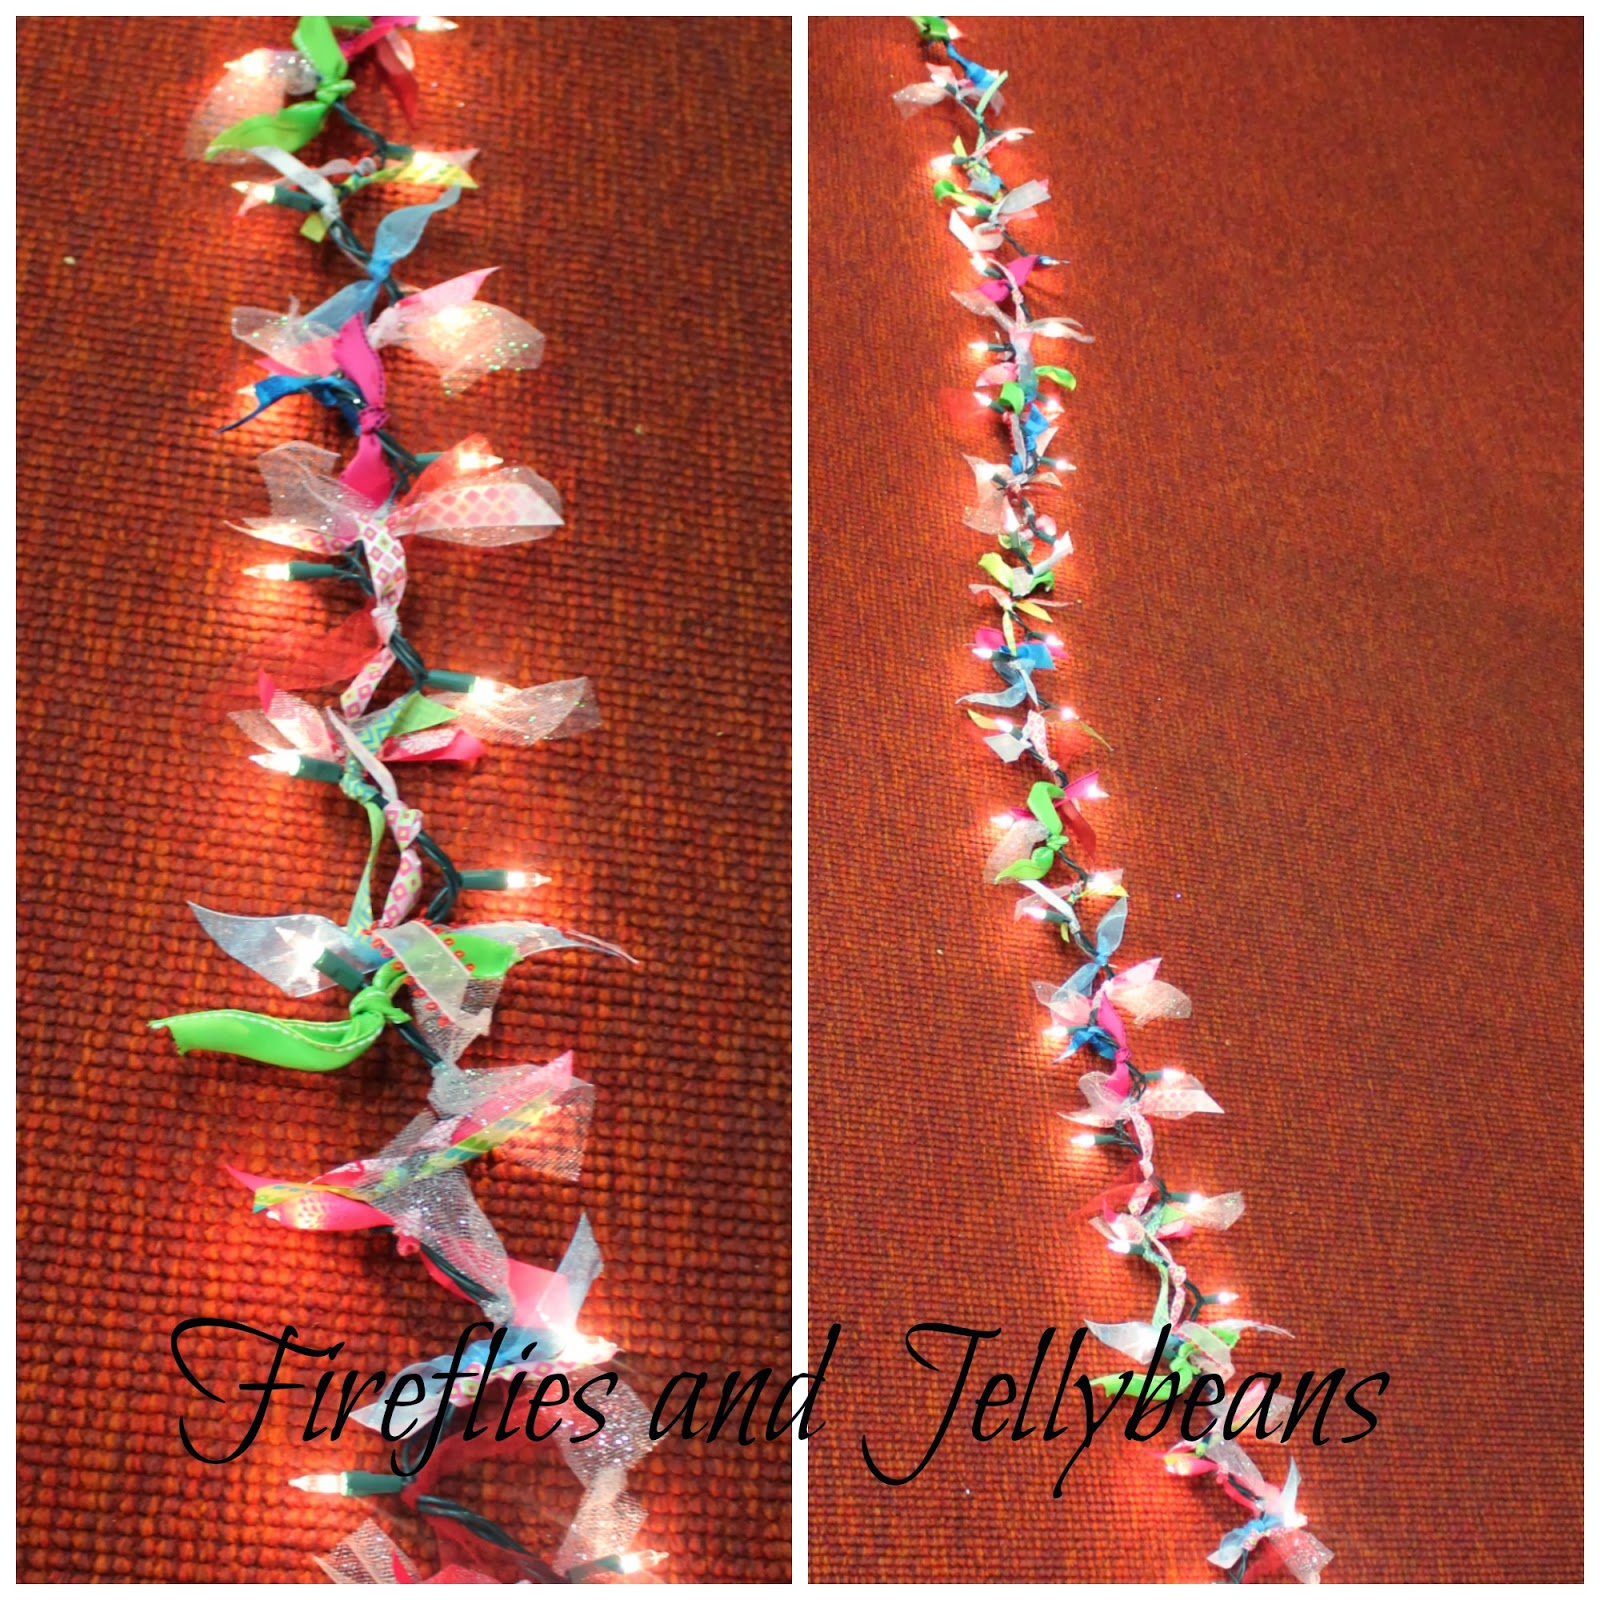 Fireflies and jellybeans ribbon light garland and a for Michaels crafts christmas ornaments